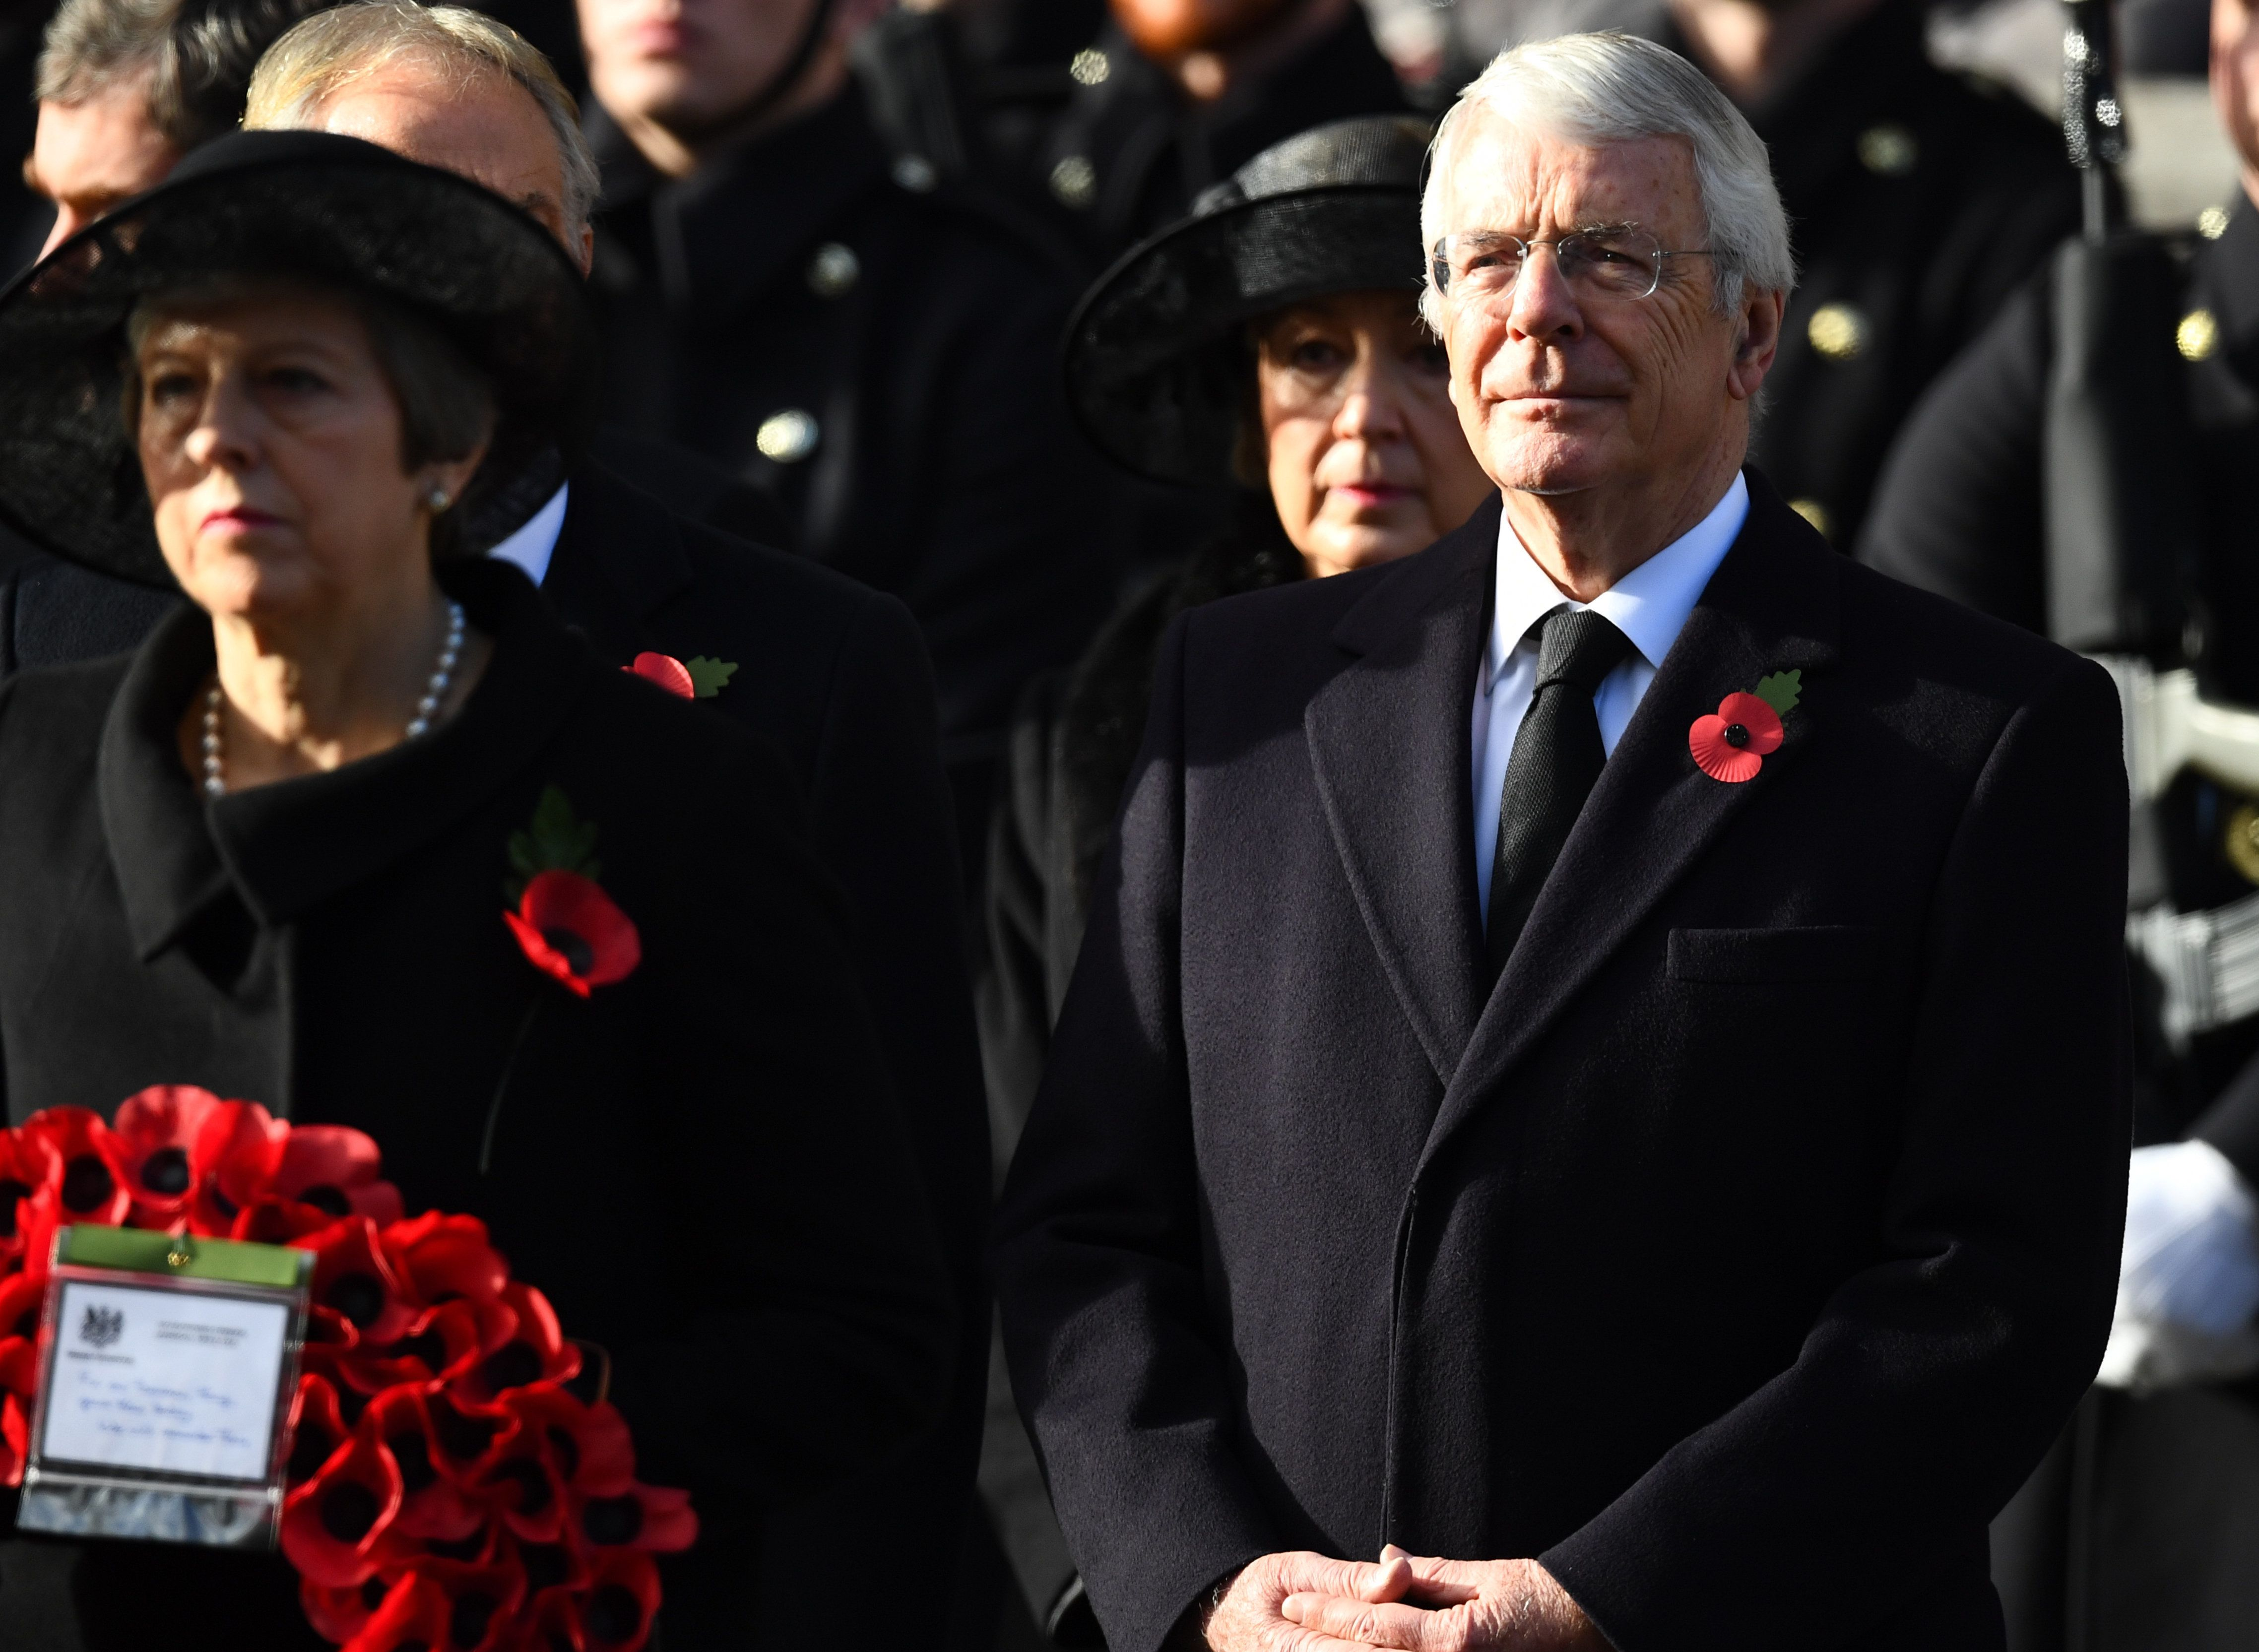 Sir John Major Calls For Article 50 To Be Revoked Immediately As Brexit Crisis